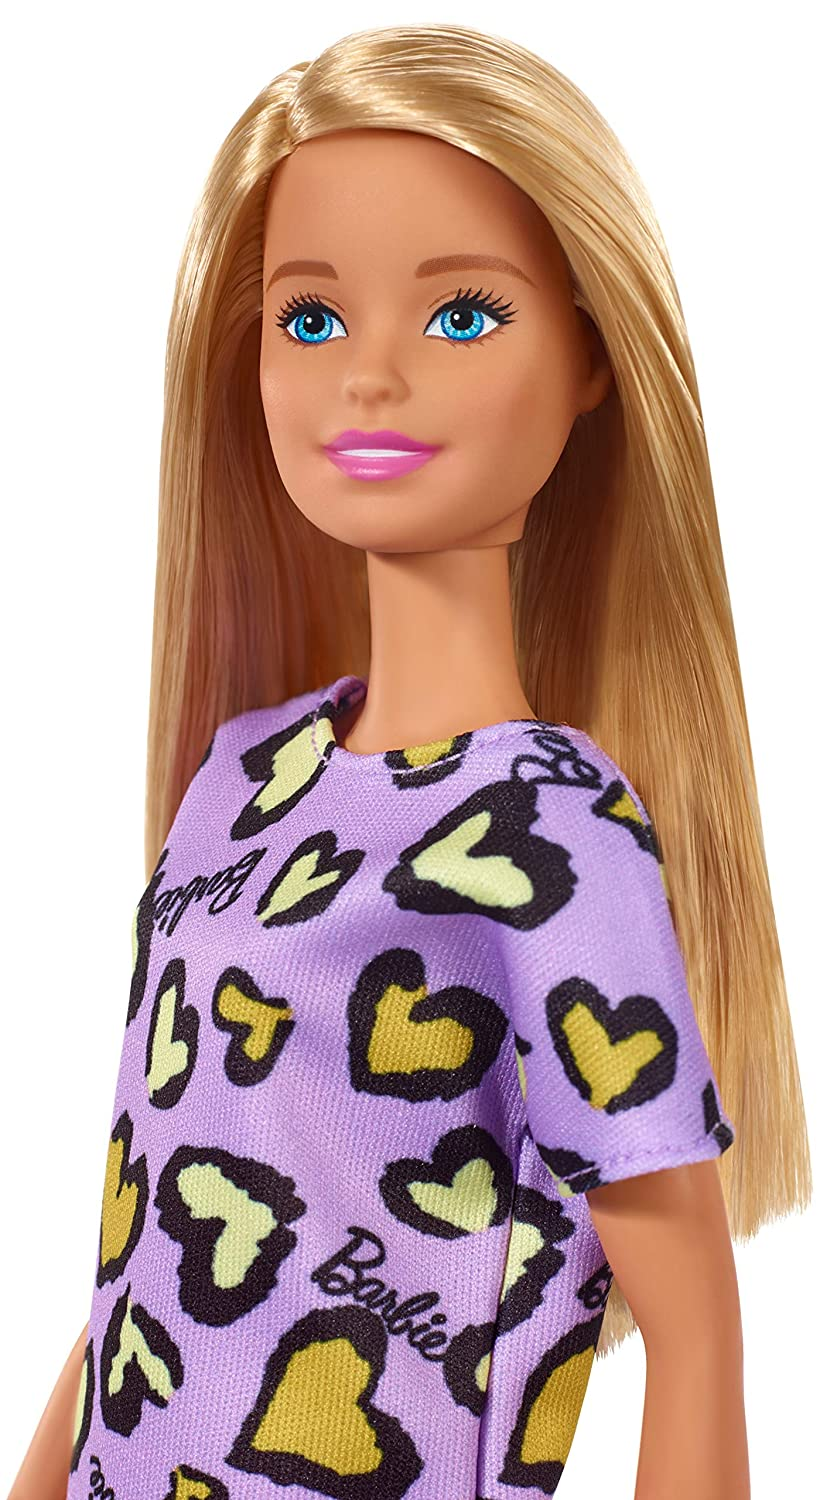 Barbie Doll for 3 to 7 Year Olds Wearing Purple and Yellow Heart-Print Dress and Platform Sneakers Blonde